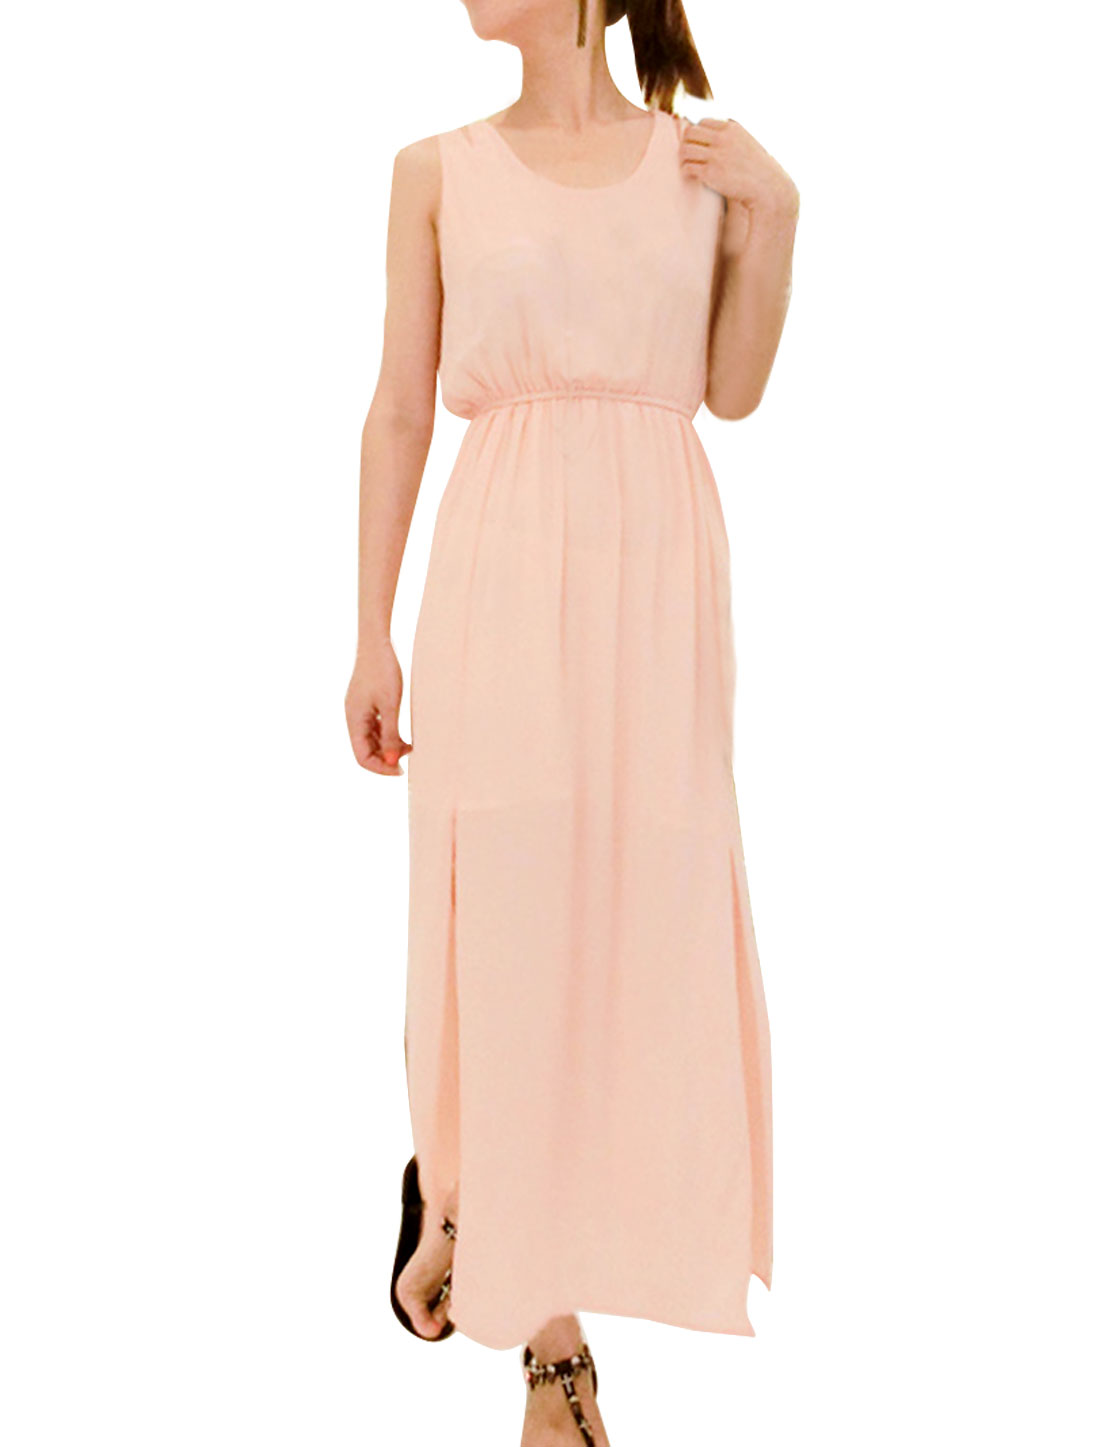 Women's Round Neck Sleeveless Sweet Pink Summer Chiffon Dress S